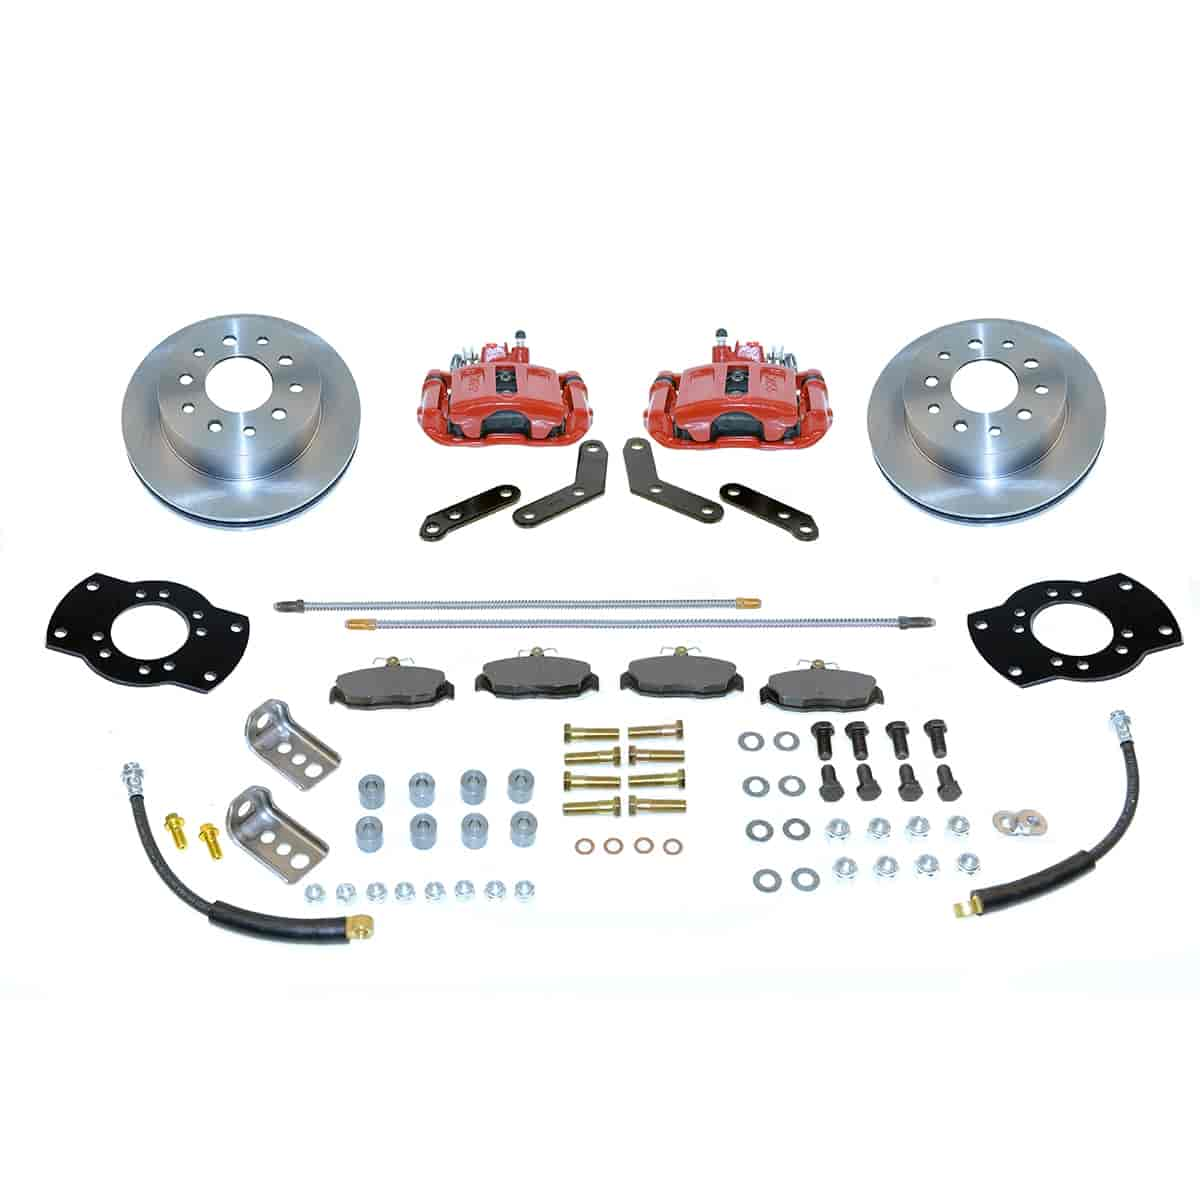 SSBC A125R - Stainless Steel Brakes Single Piston Rear Disc Brake Conversion Kit